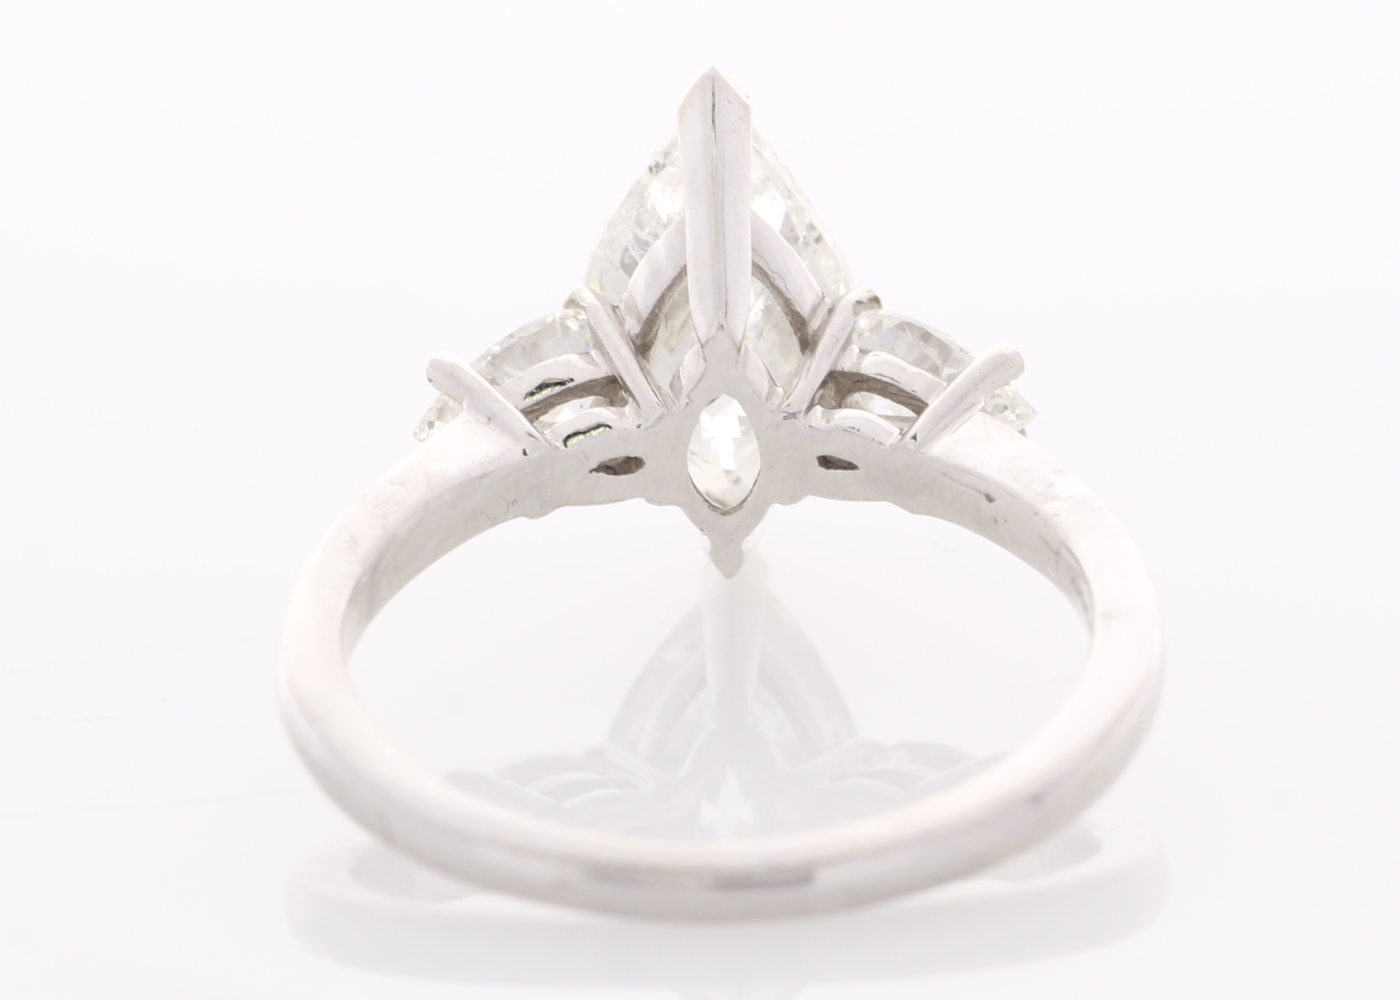 Lot 55 - 18ct White Gold Three Stone Claw Set Diamond Ring 2.51